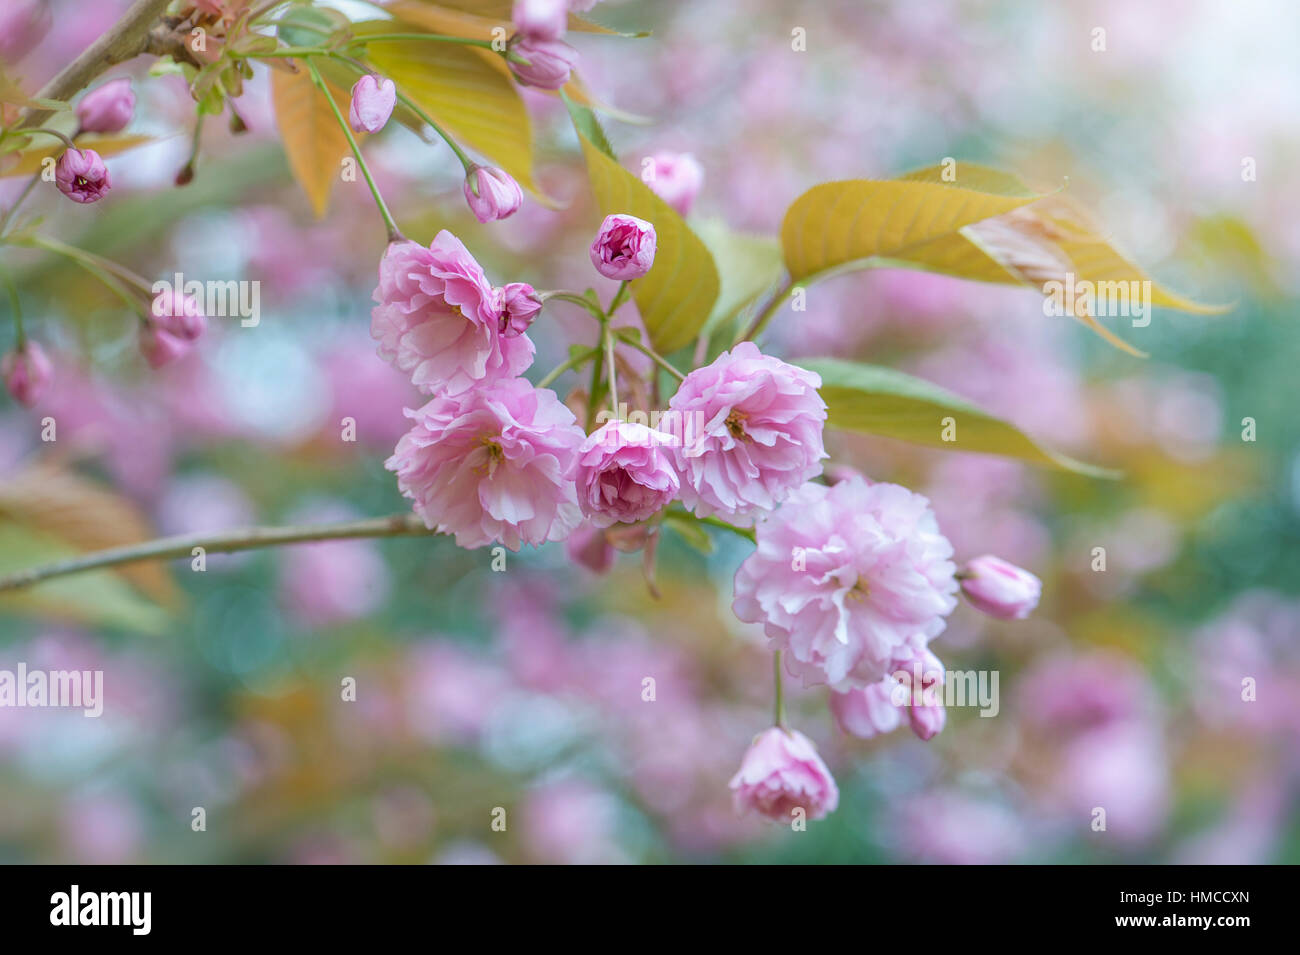 Japanese Flowering Cherry Tree Prunus Kanzan Spring Pink Blossom